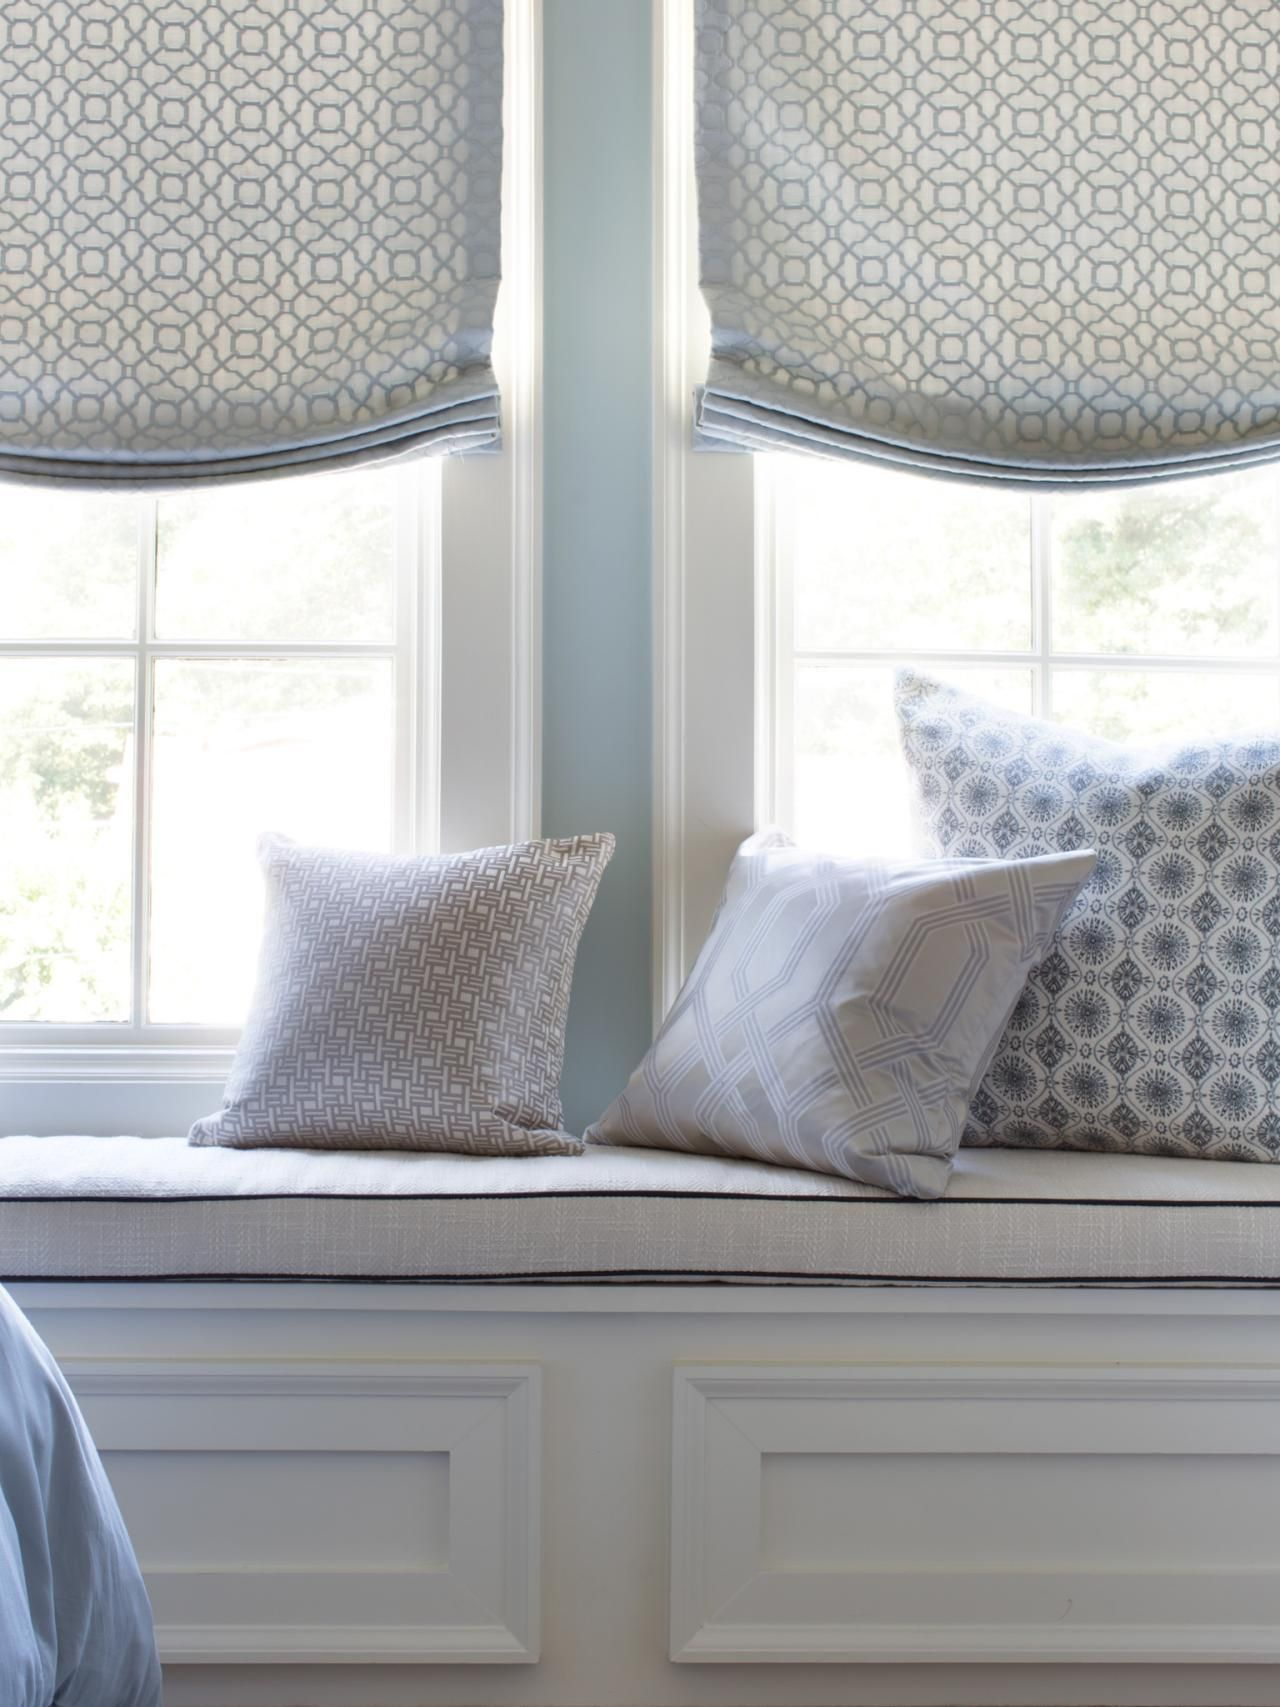 Outside window treatment ideas  what was considered dead space now serves as a comfy spot for guests